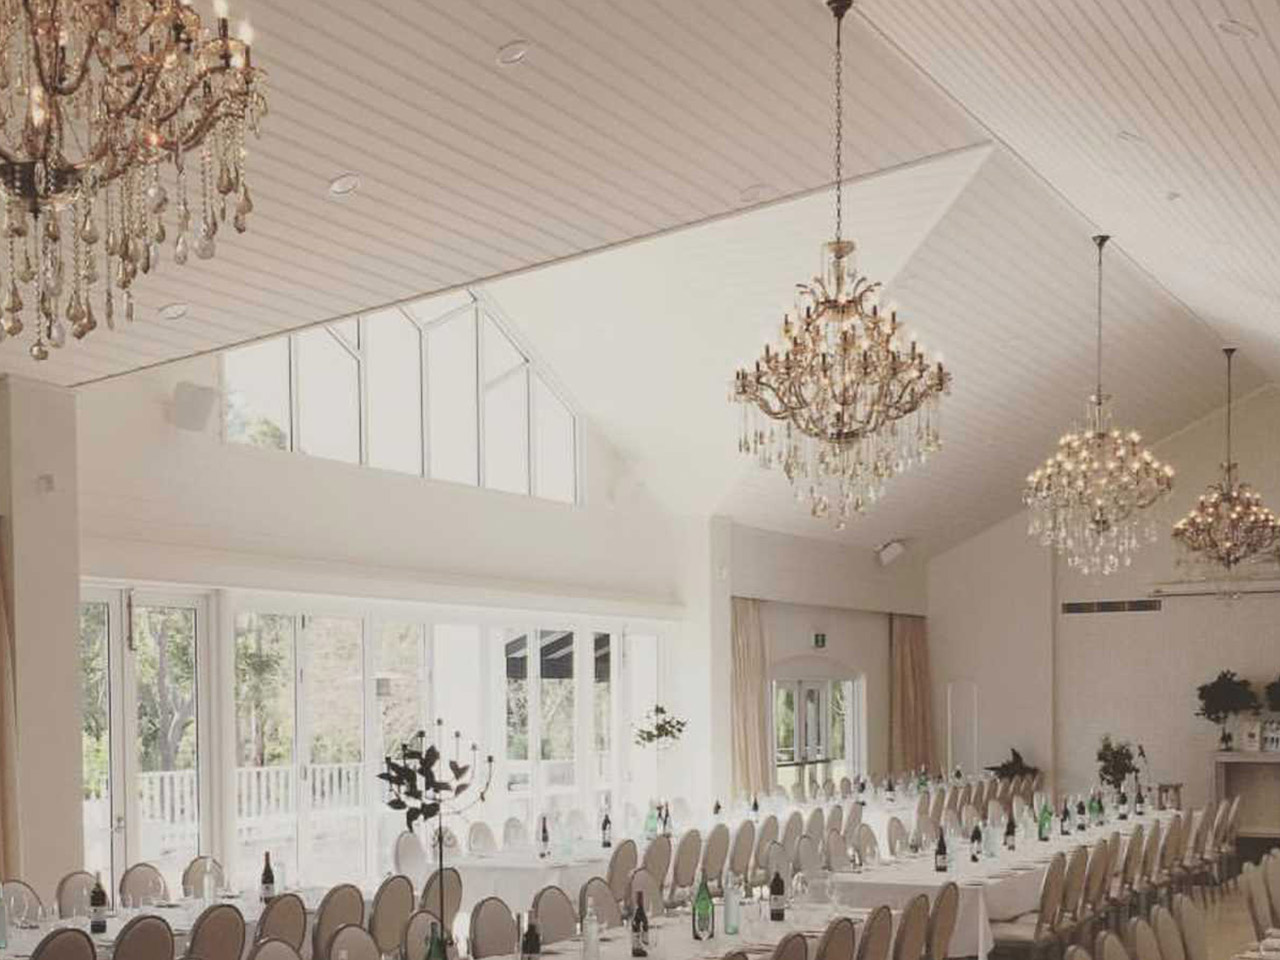 Inside the Events Room with Long Tables Setup for Wedding with Chandeliers